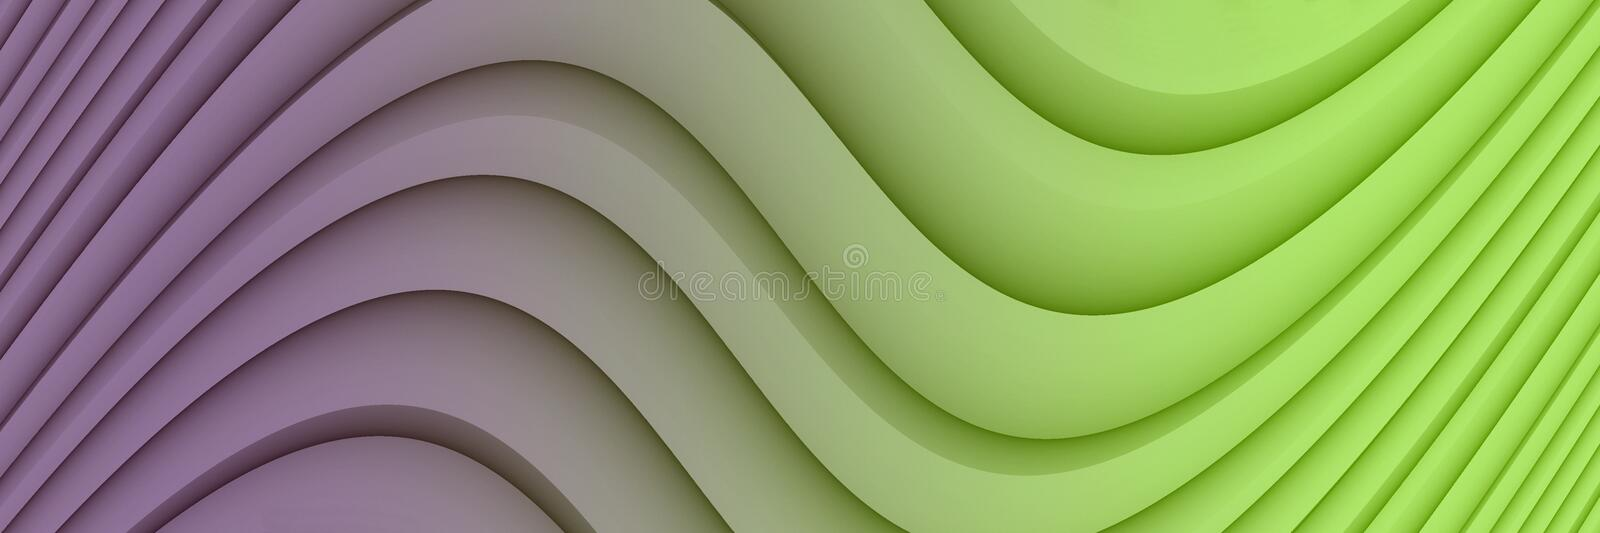 Colorful vivid purple and green abstract background illustration with soft curves and lines. Computer generated abstract fractal background banner illustration stock illustration